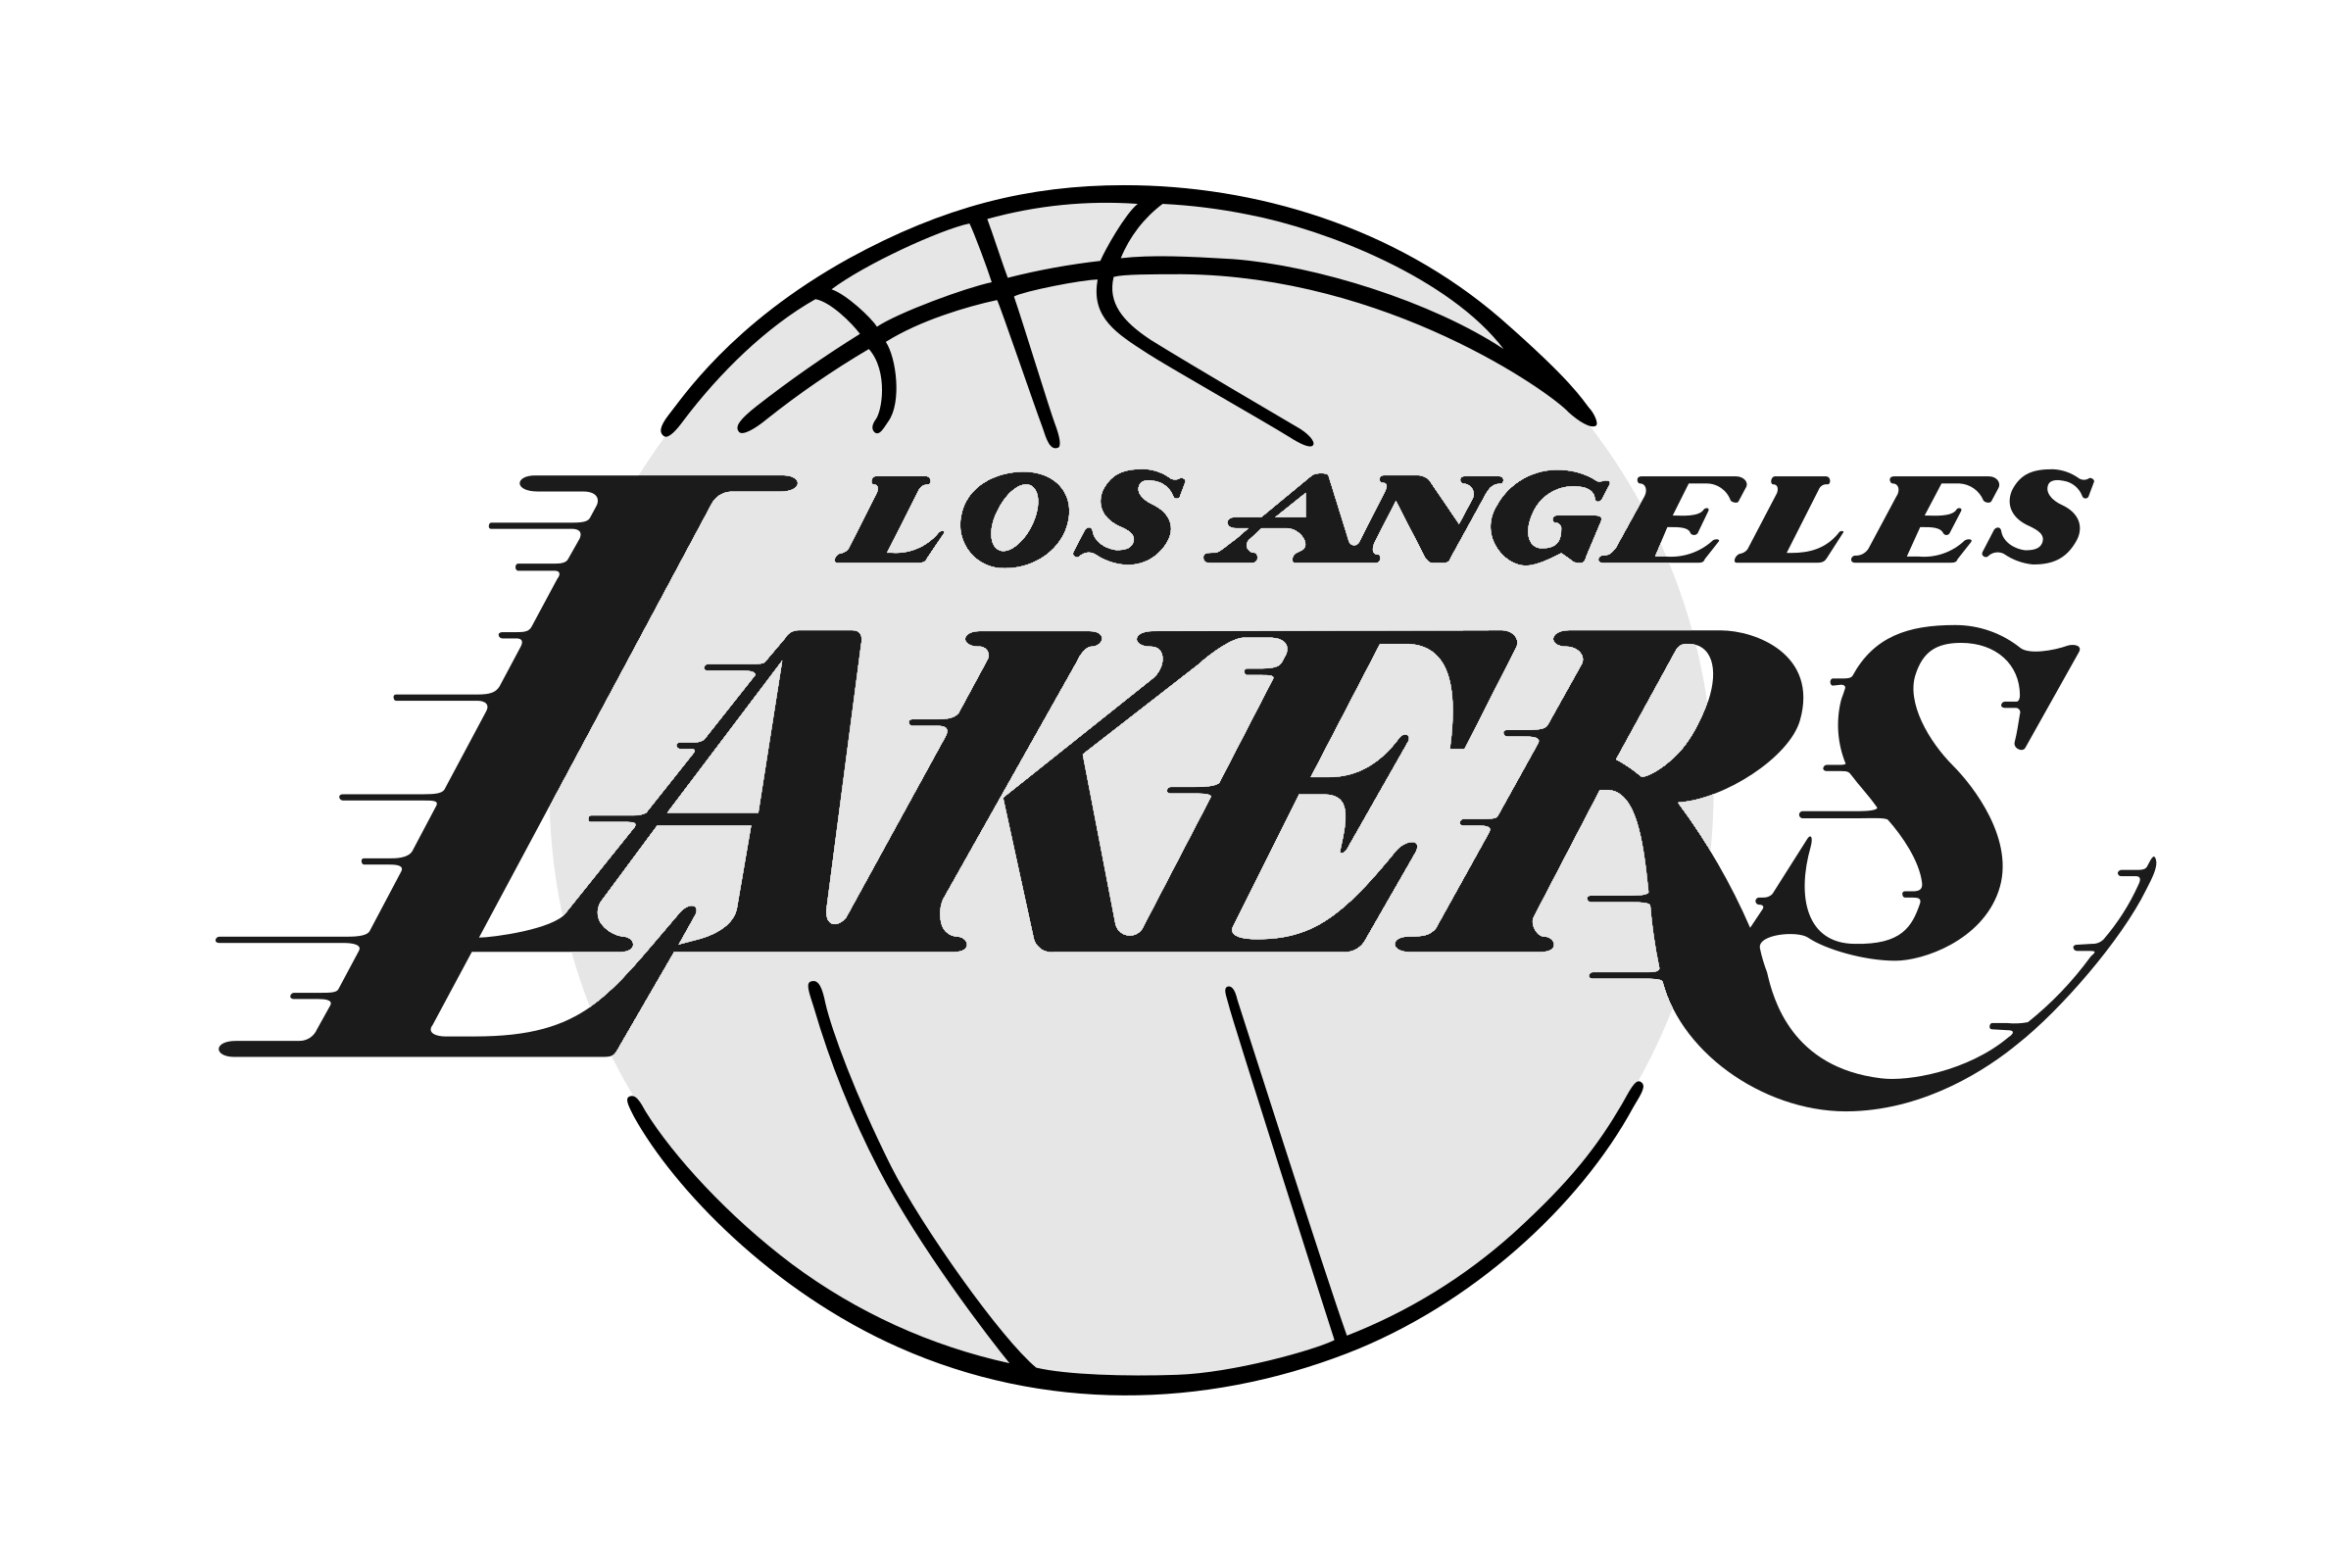 Los Angeles Lakers Logo Png Transparent Svg Vector Freebie Supply